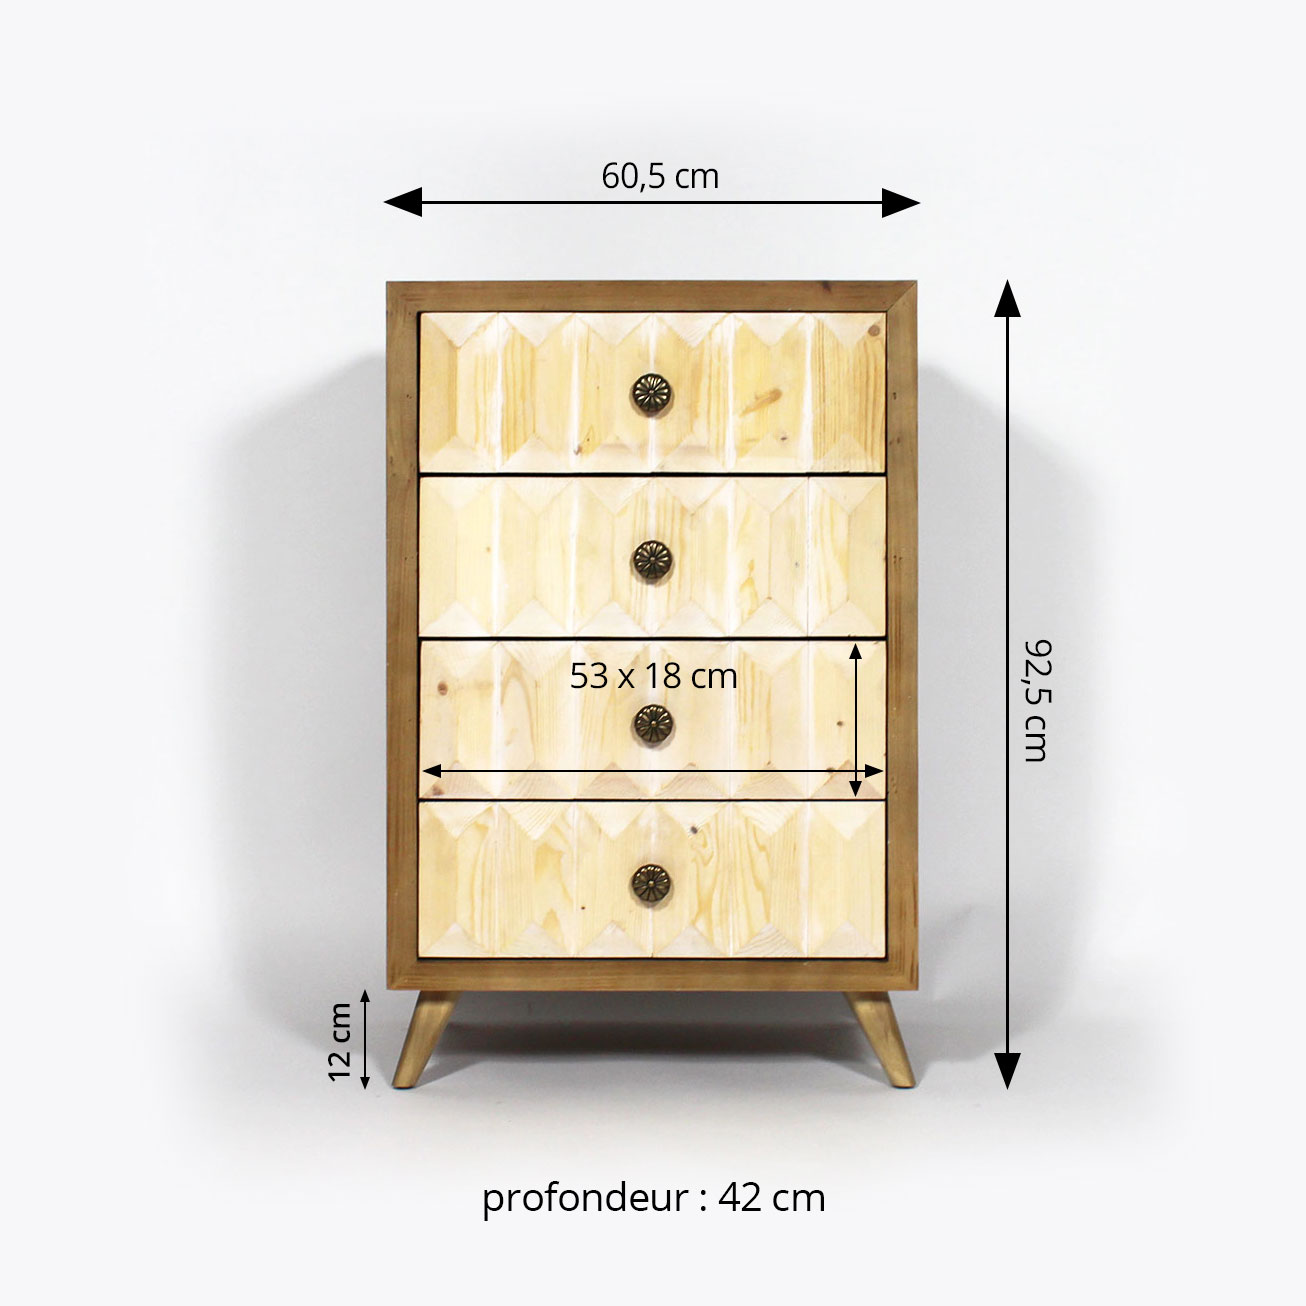 commode dimensions